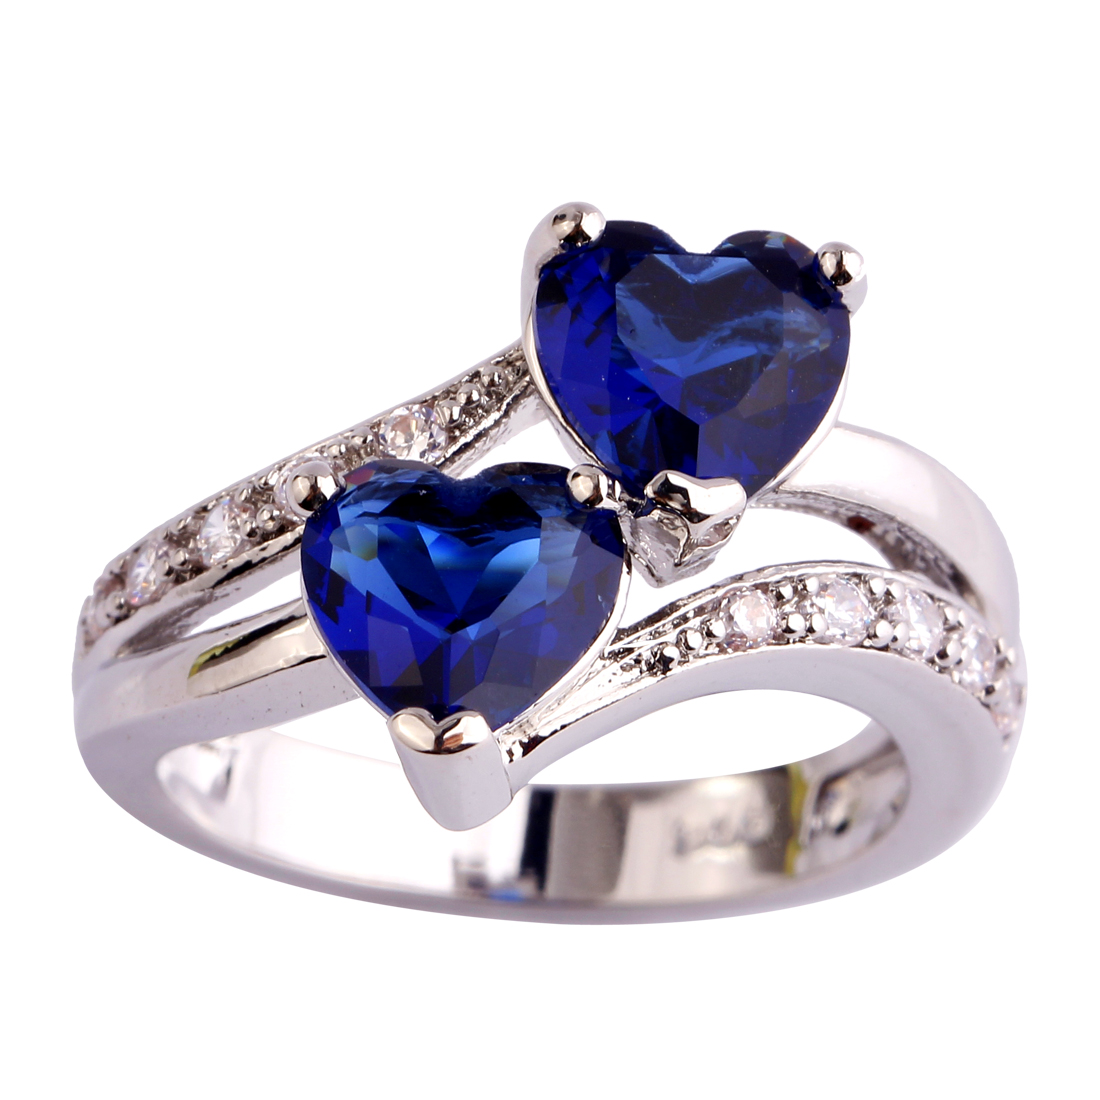 AAA CZ Fashion Lab Blue Sapphire Quartz 18K White Gold Plated Silver Ring Gems Jewelry Size 6 7 8 9 10 11 12 Free Shipping Gif(China (Mainland))